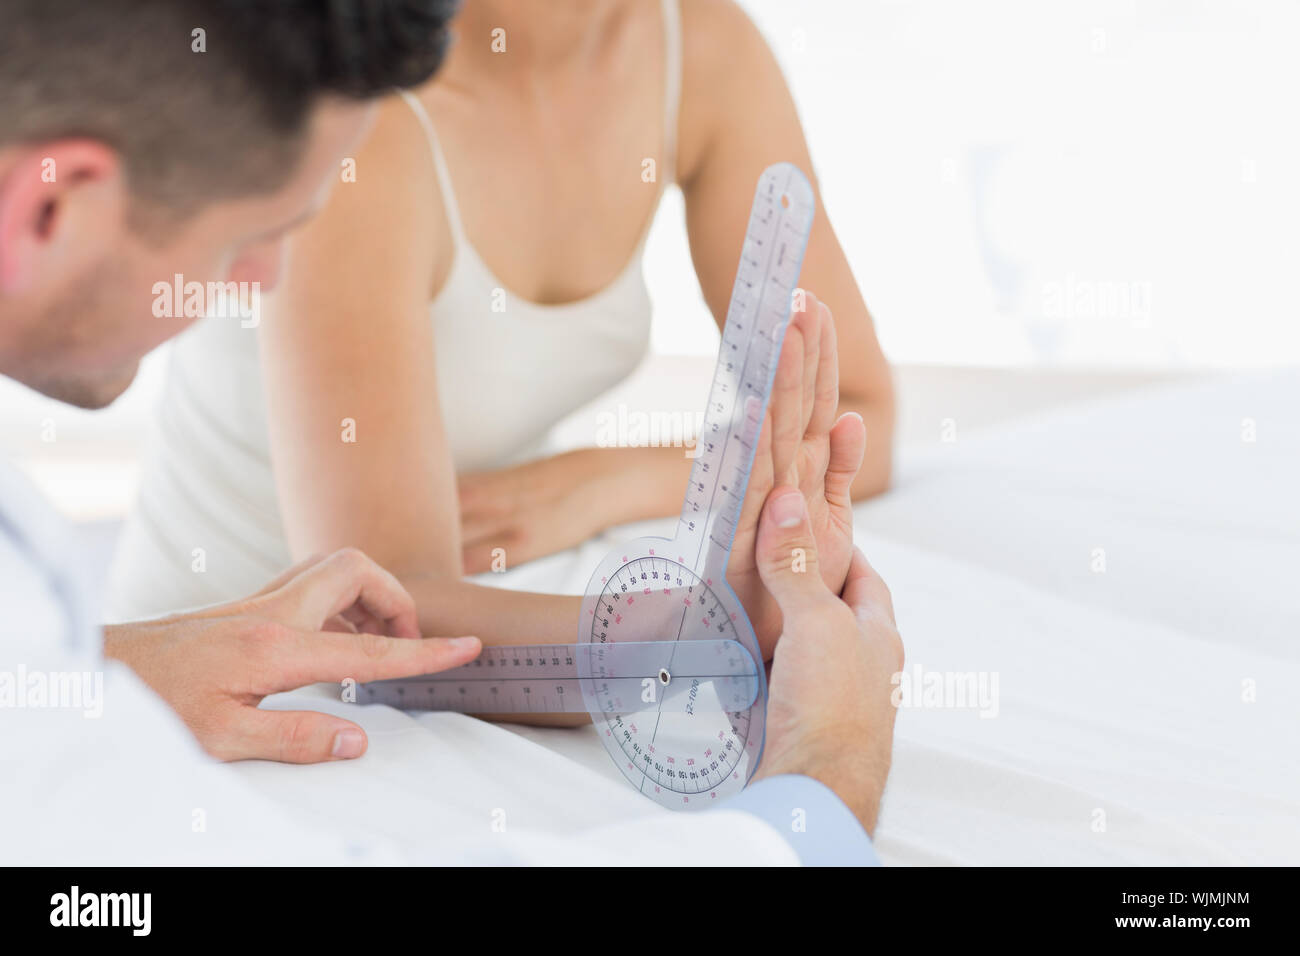 Physiotherapist examining patients wrist with goniometer in clinic Stock Photo